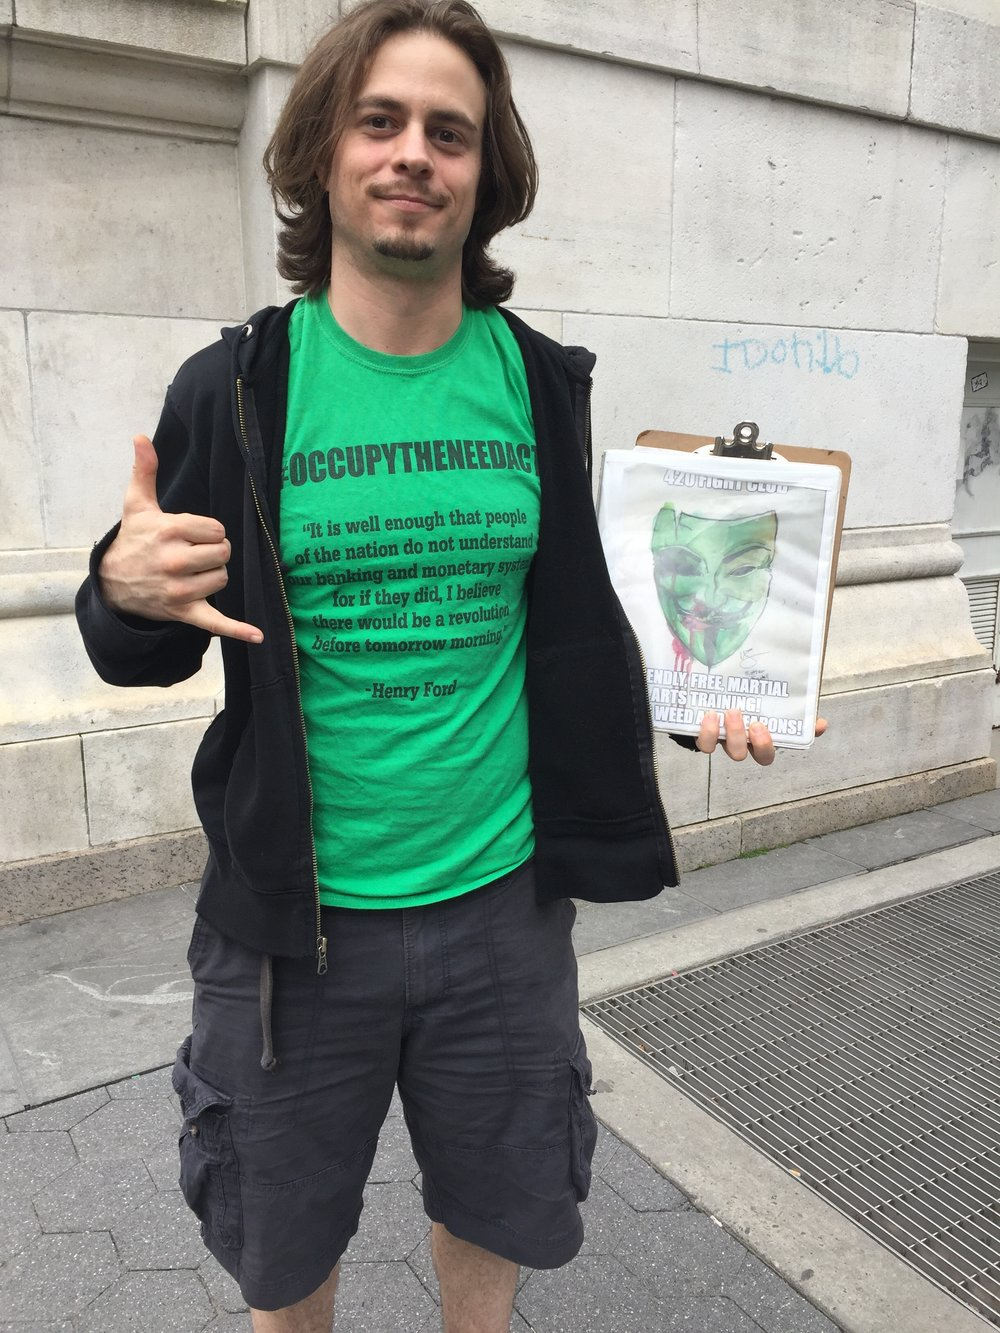 Harrison Schultz - Harrison Schultz of the 4/20 Fight Club joins me to discuss the United States Monetary System, his thoughts on the Federal Reserve, and what really happened behind the scenes during the Occupy Wall Street Movement.